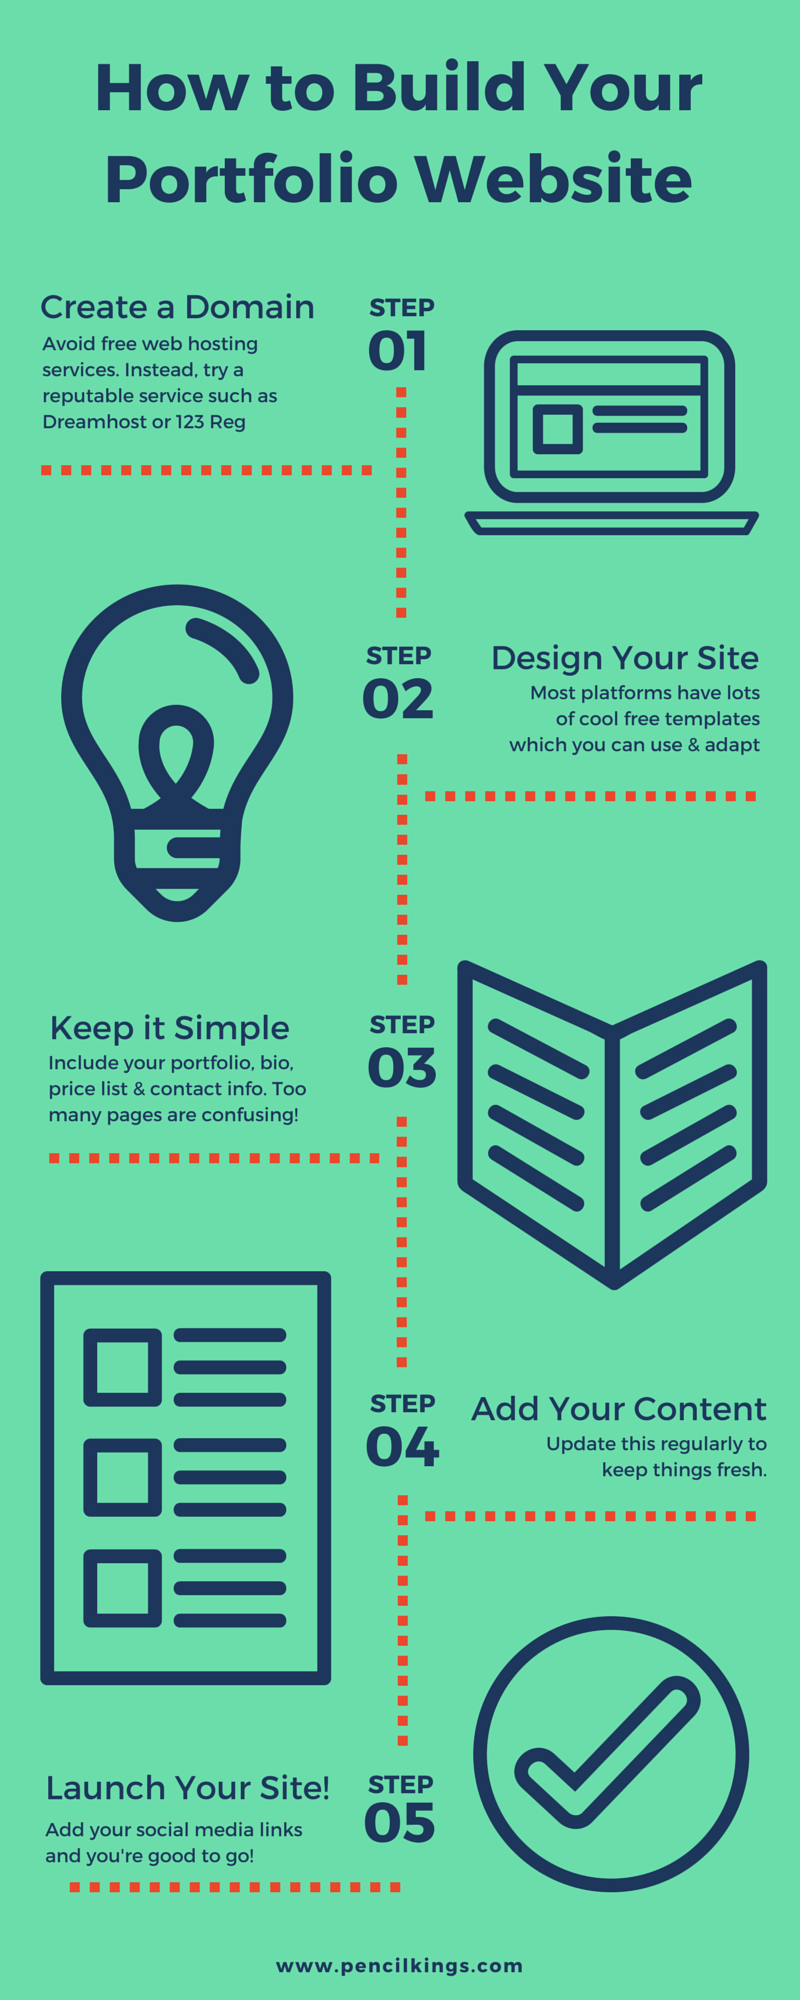 Build Your Art Portfolio Website infographic